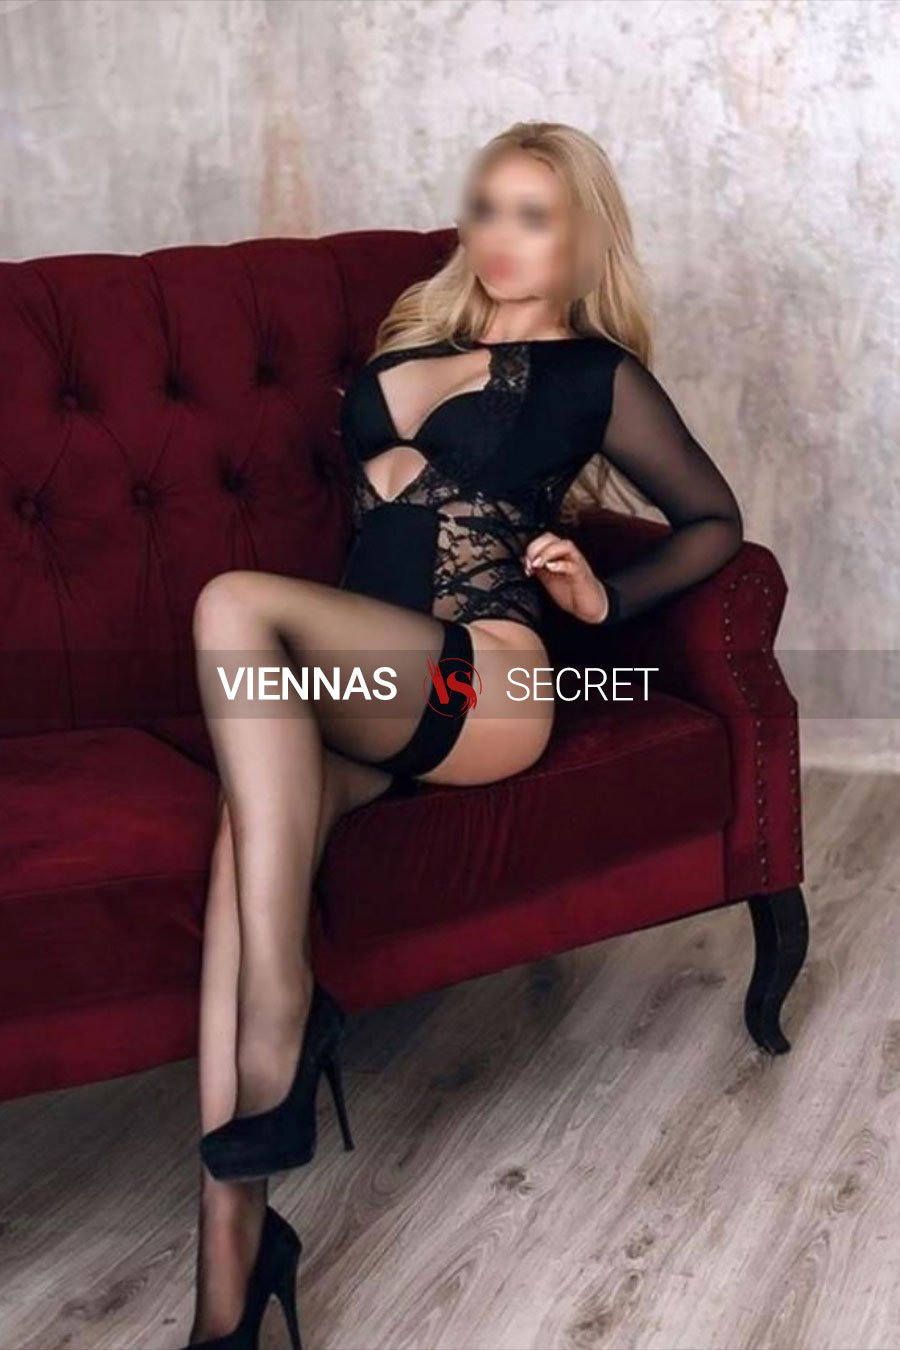 Vienna Escort Cindy 21 posing on a sofa